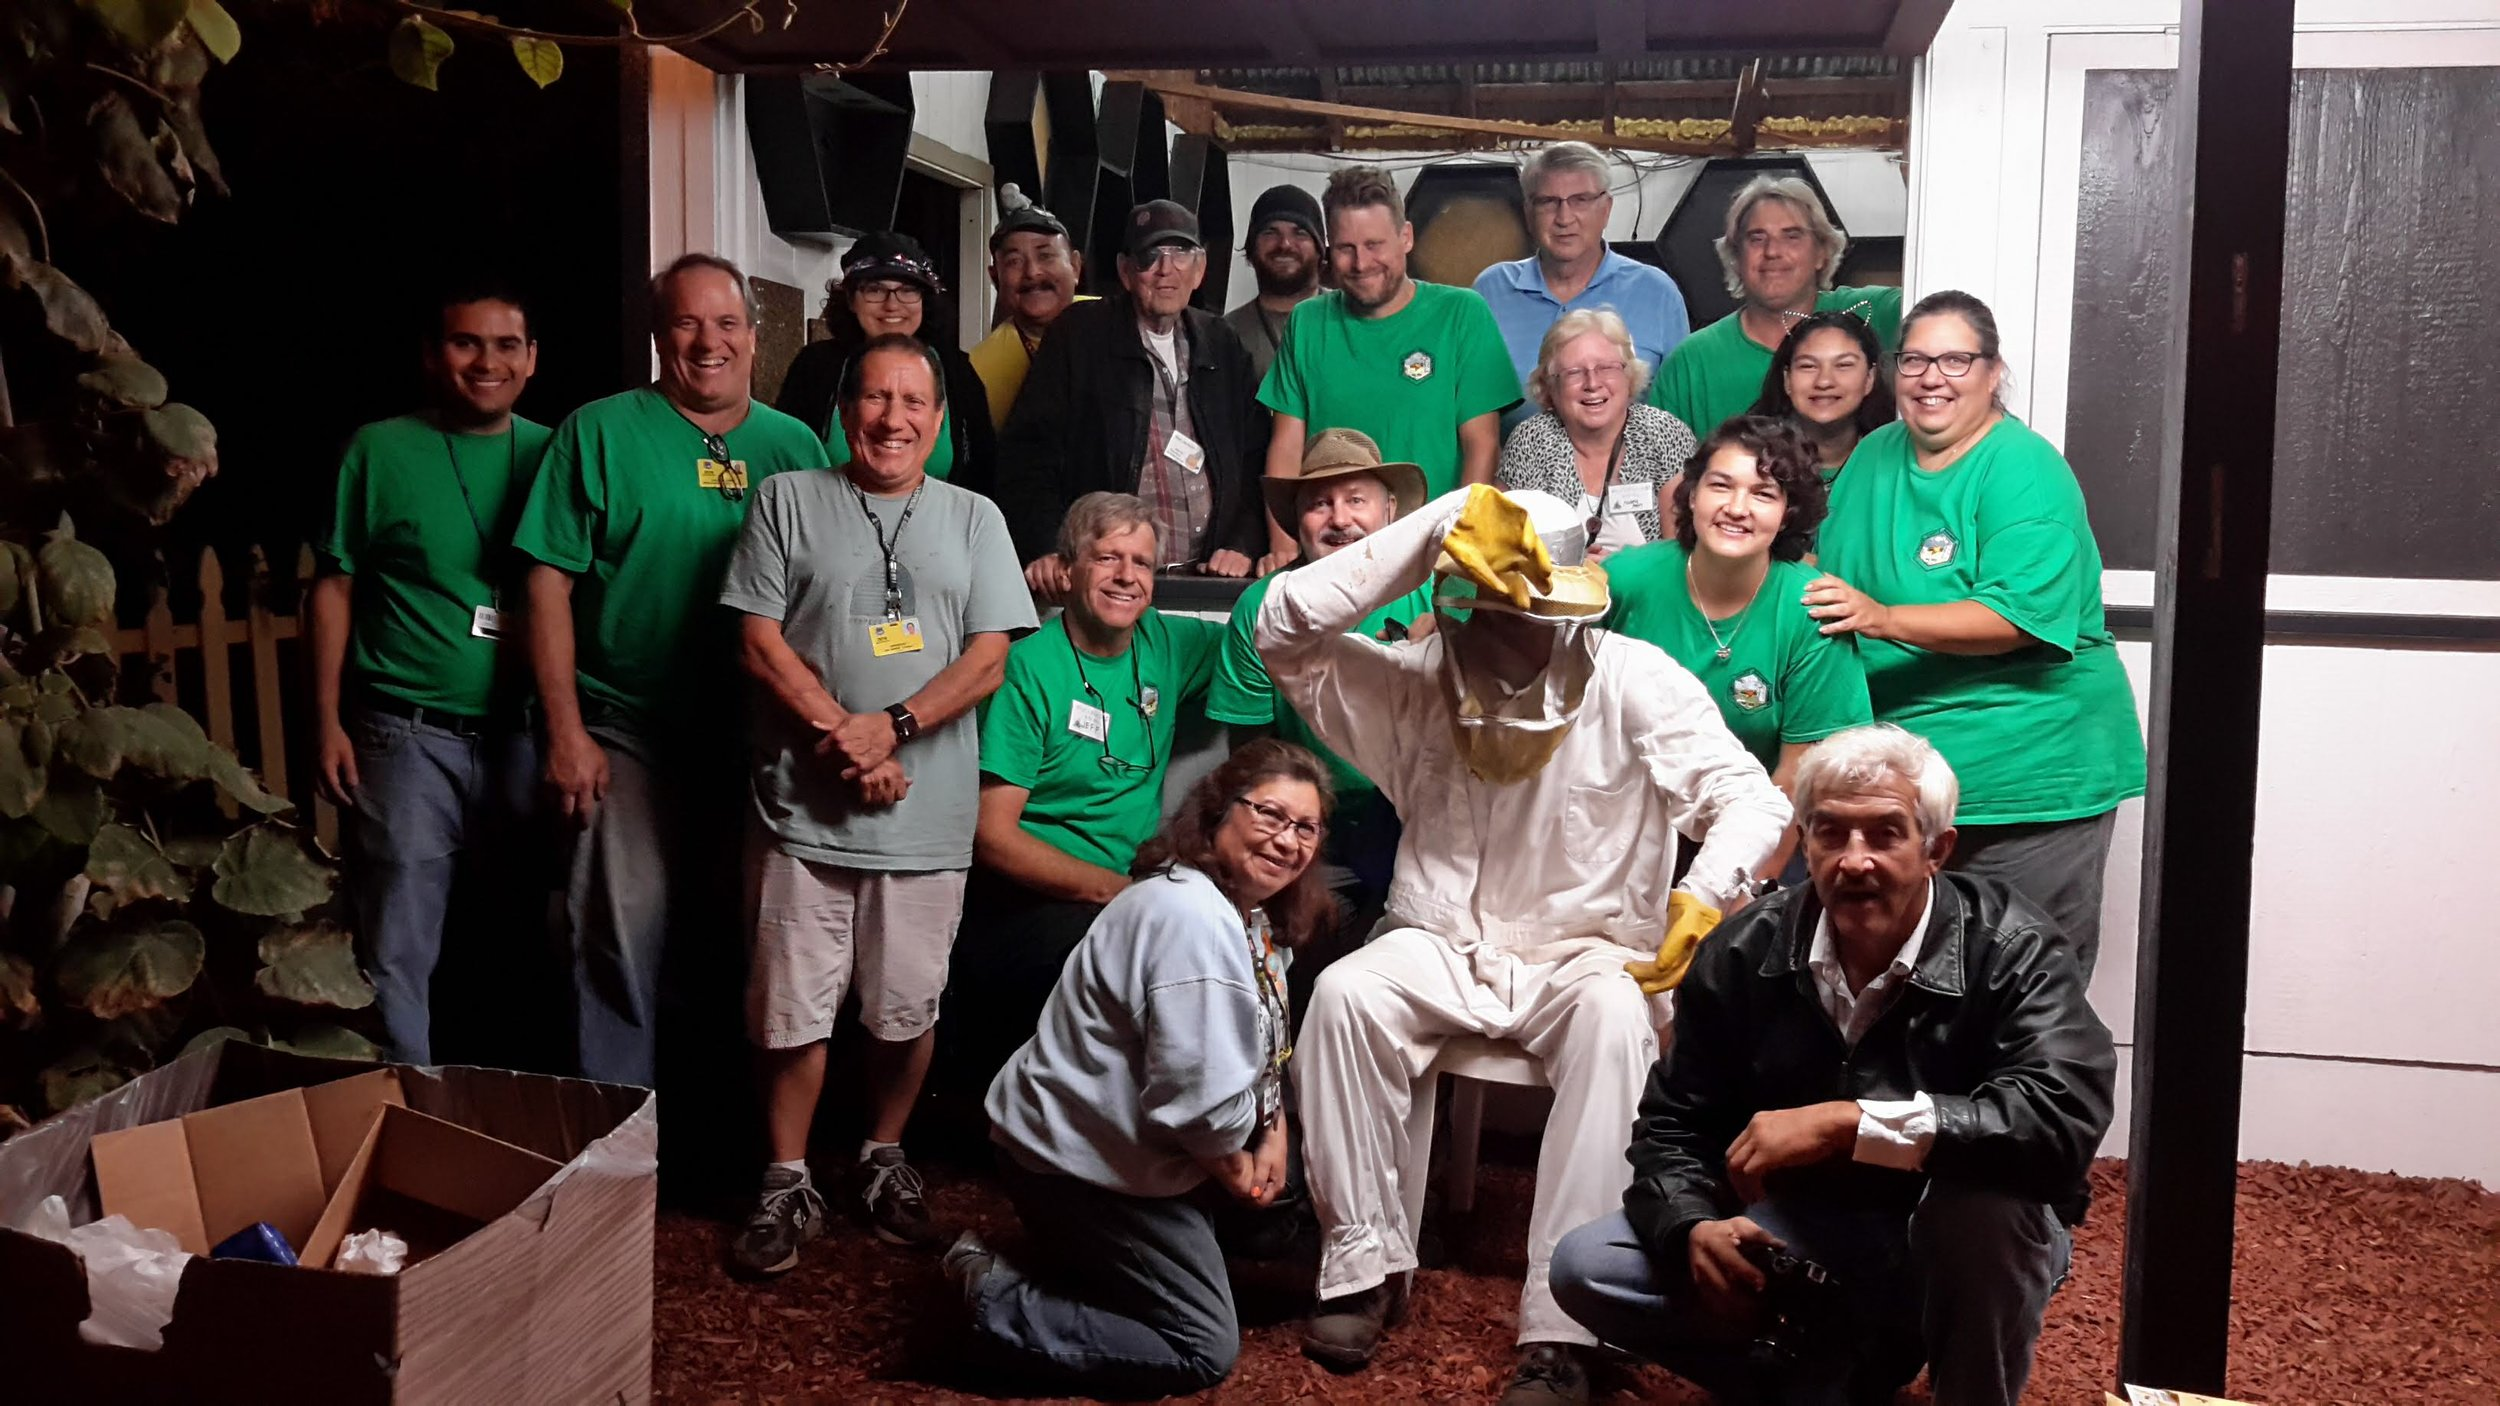 just some of the many volunteers from the los angeles county beekeepers association and the beekeepers association of southern california! thank you all for your many hours helping the honey bees!